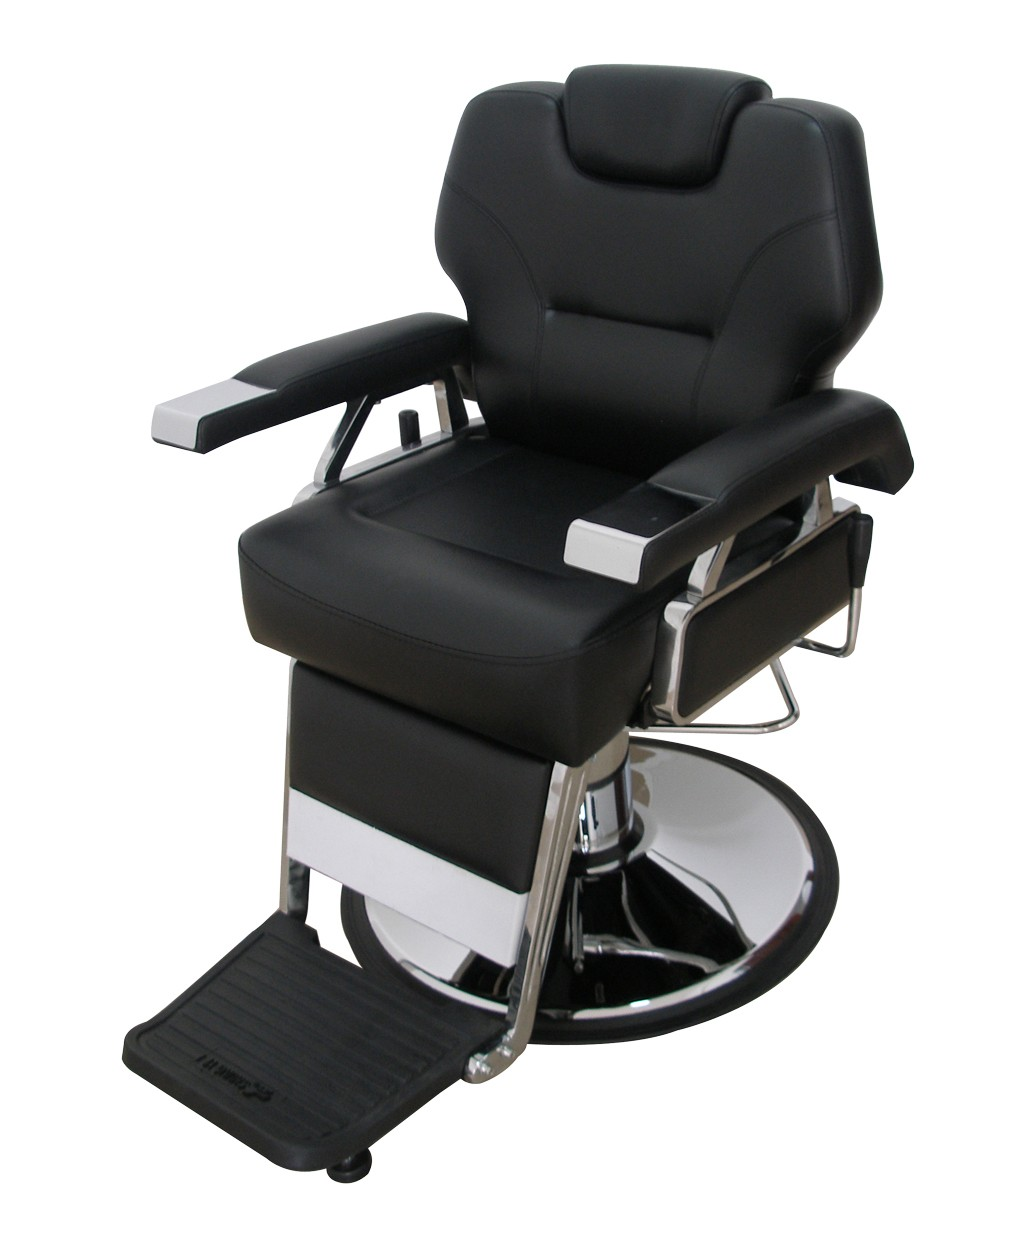 k.o. professional barber chair